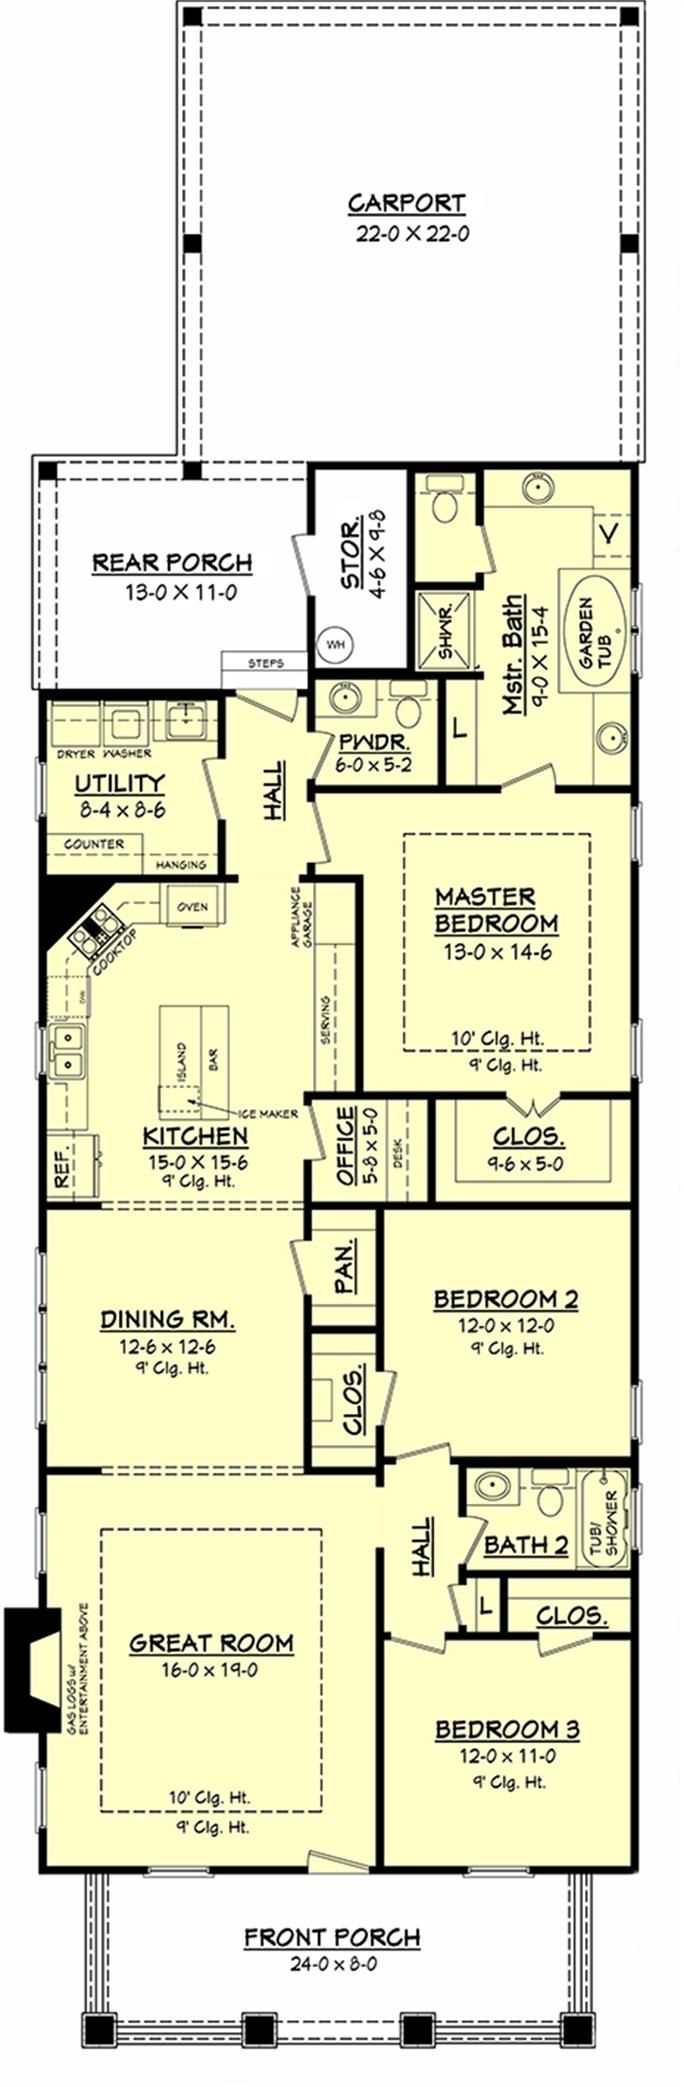 69 best two story house plans images on pinterest story house 69 best two story house plans images on pinterest story house country houses and floor plans